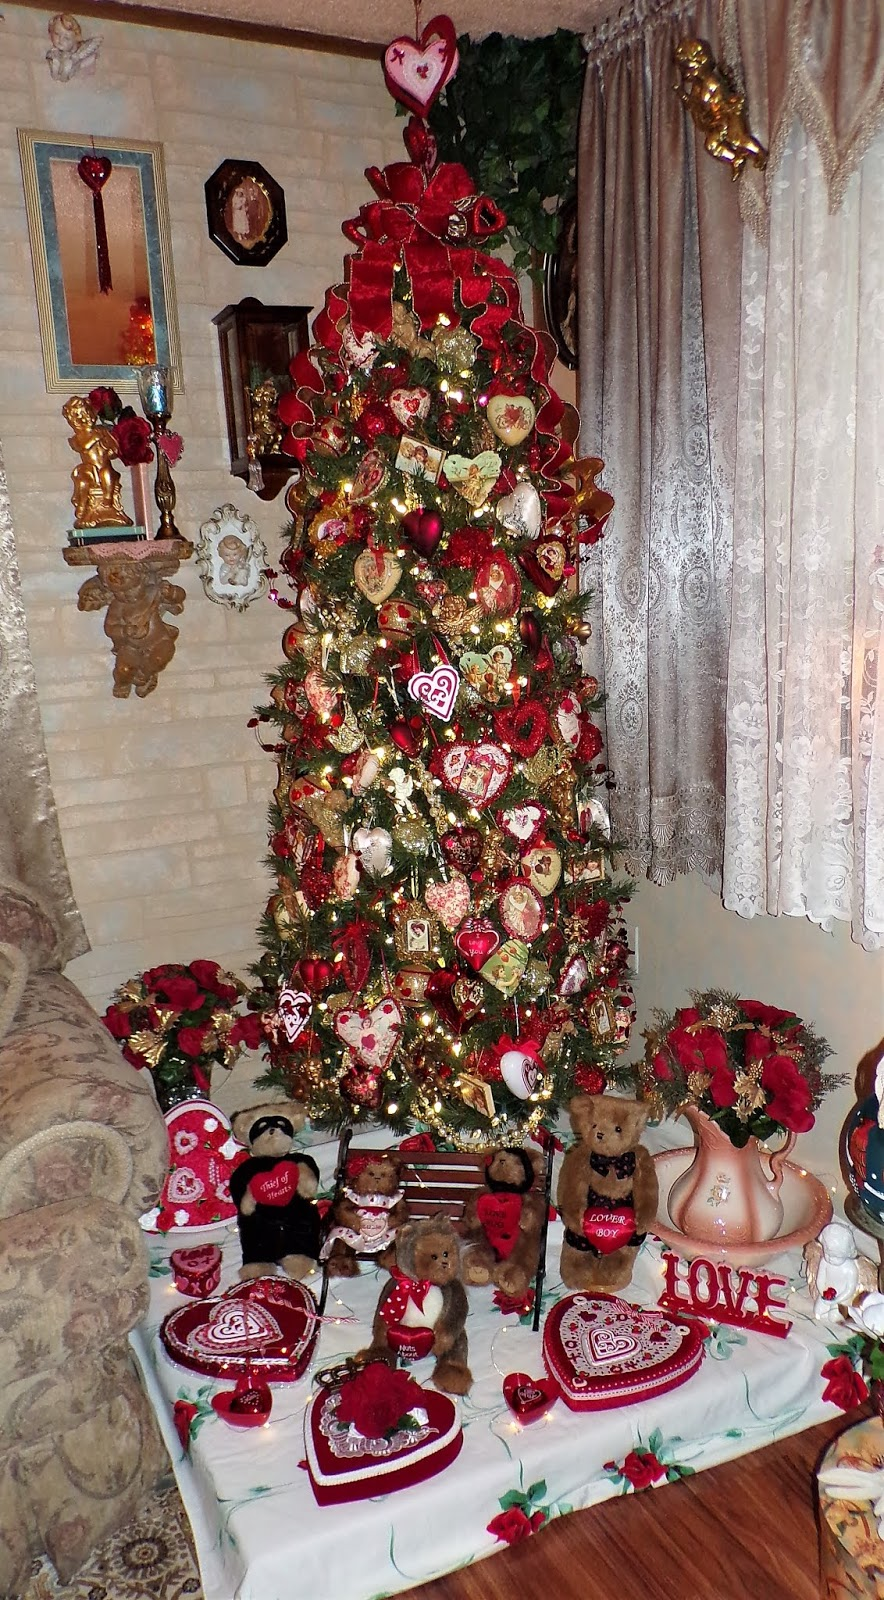 3 Red and Gold Valentine's Trees in the Living Room, 2020